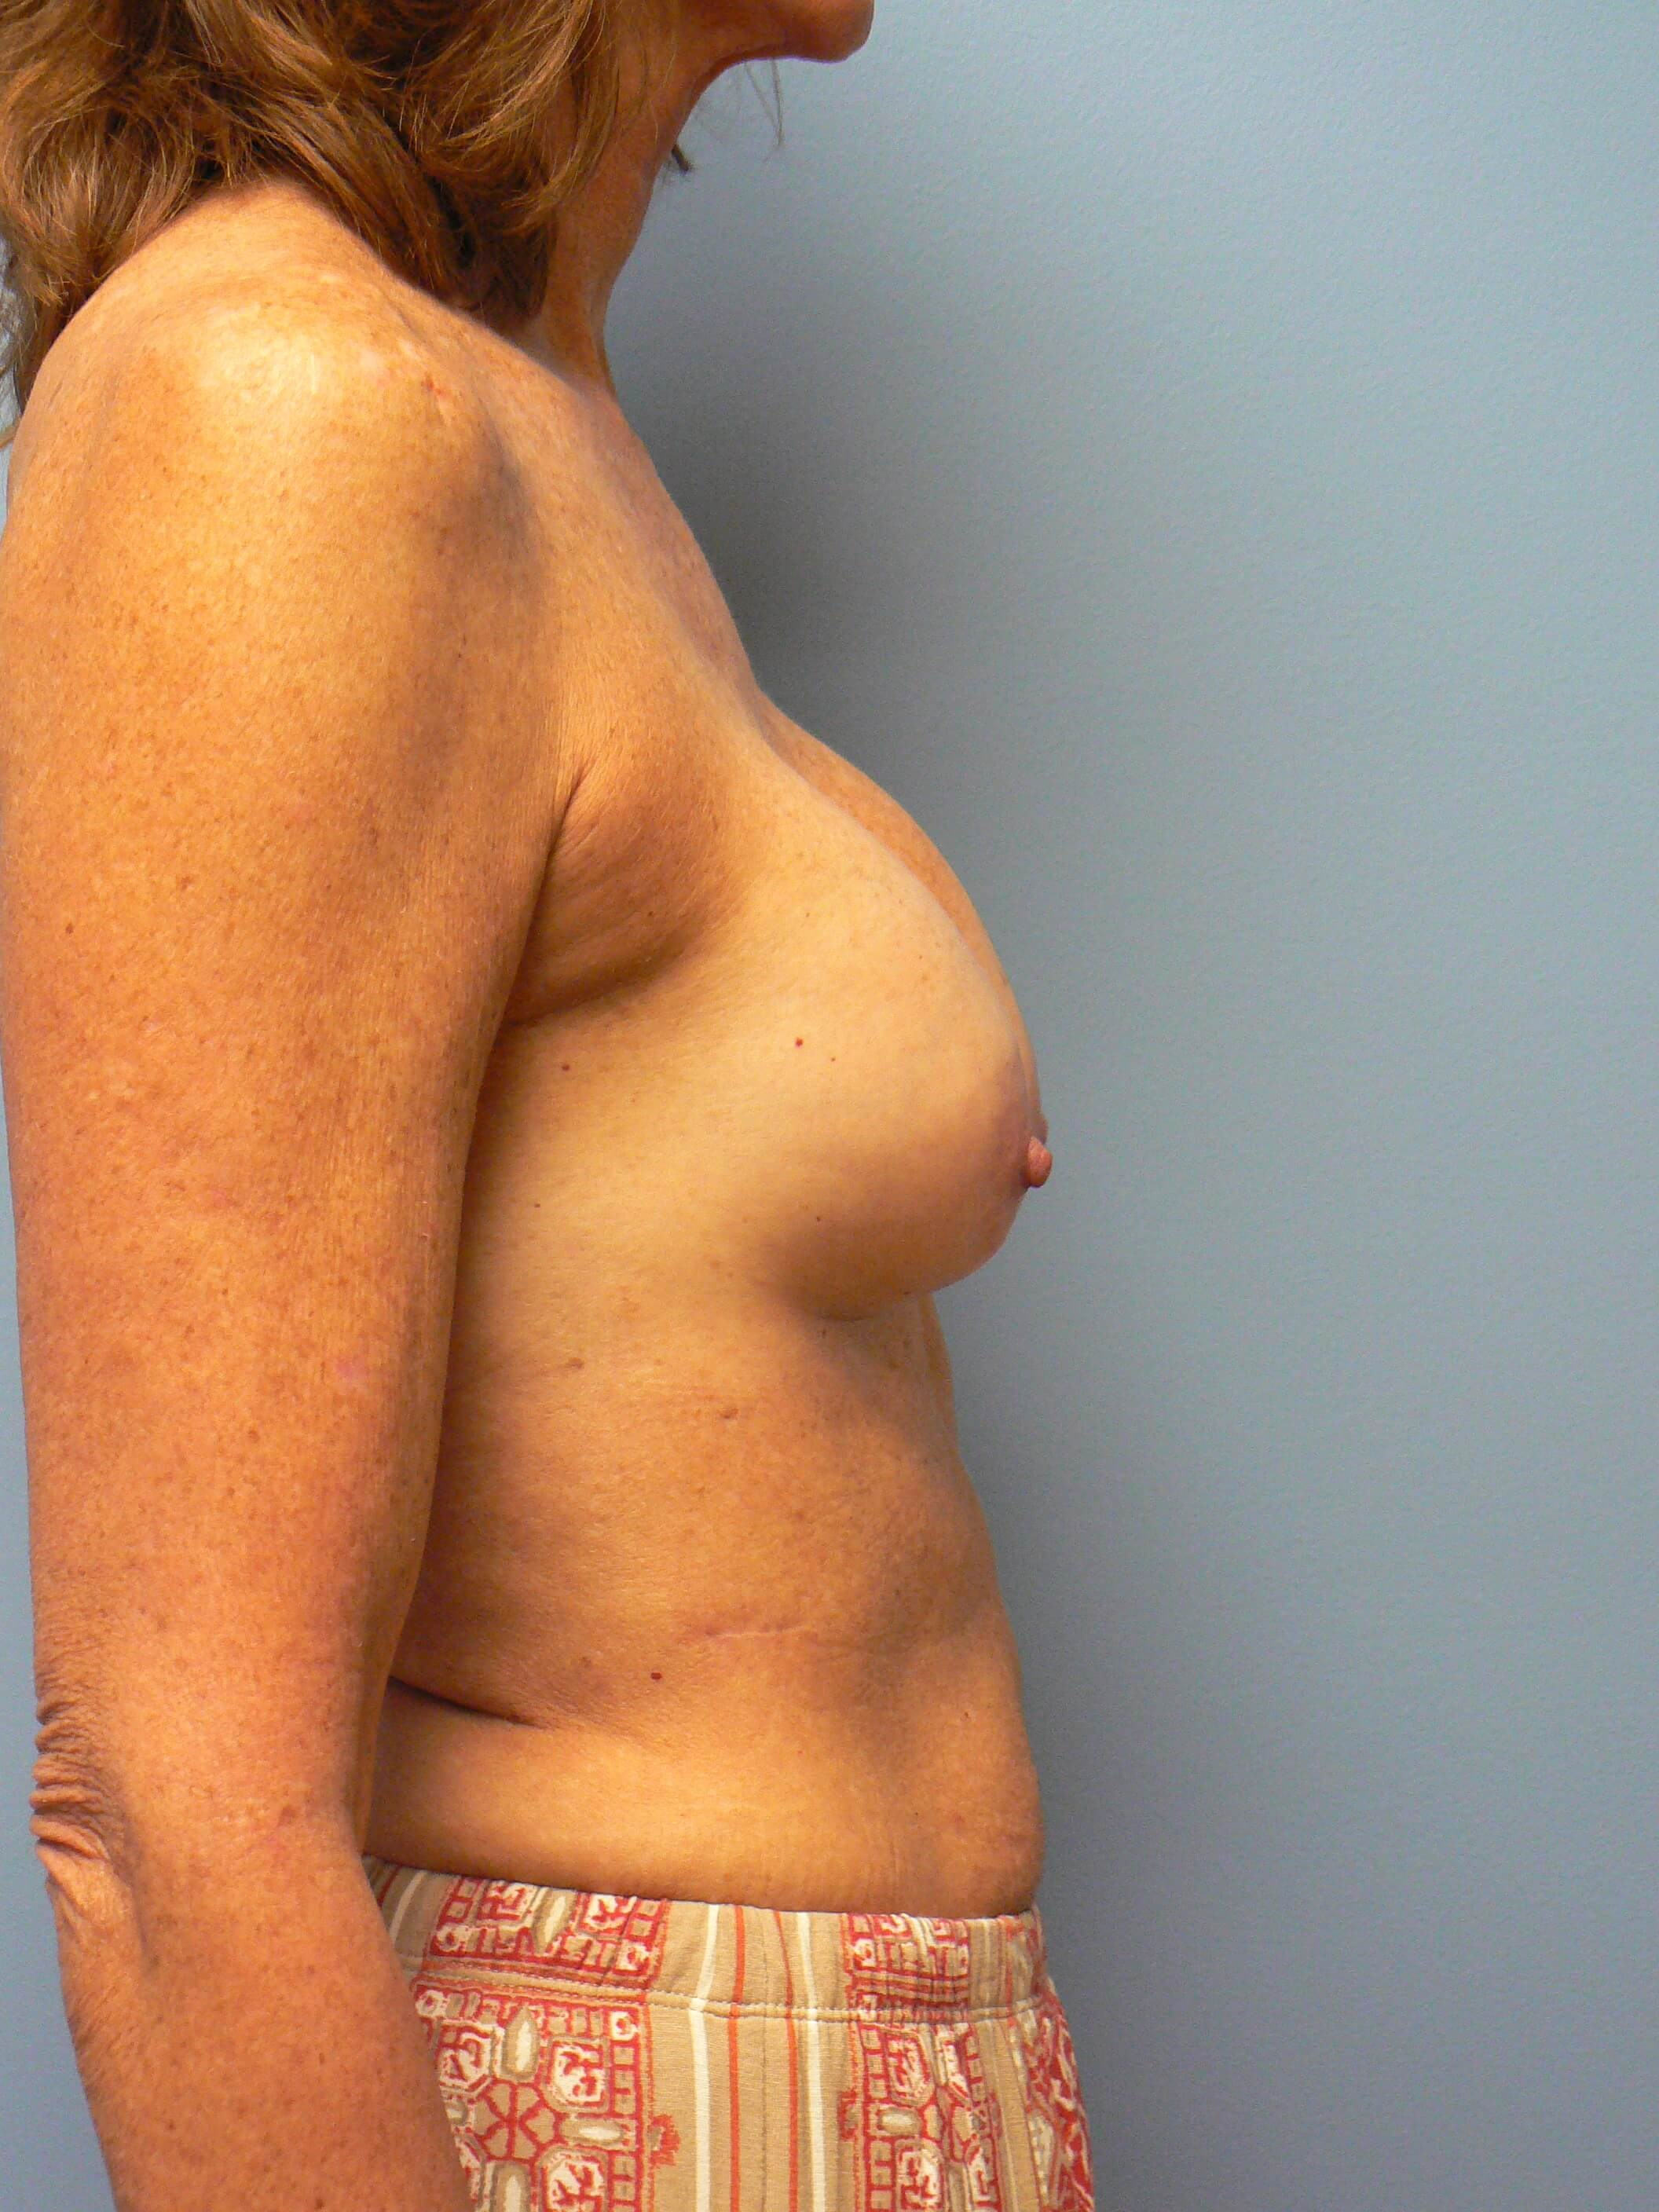 Secondary Breast Surgery Before